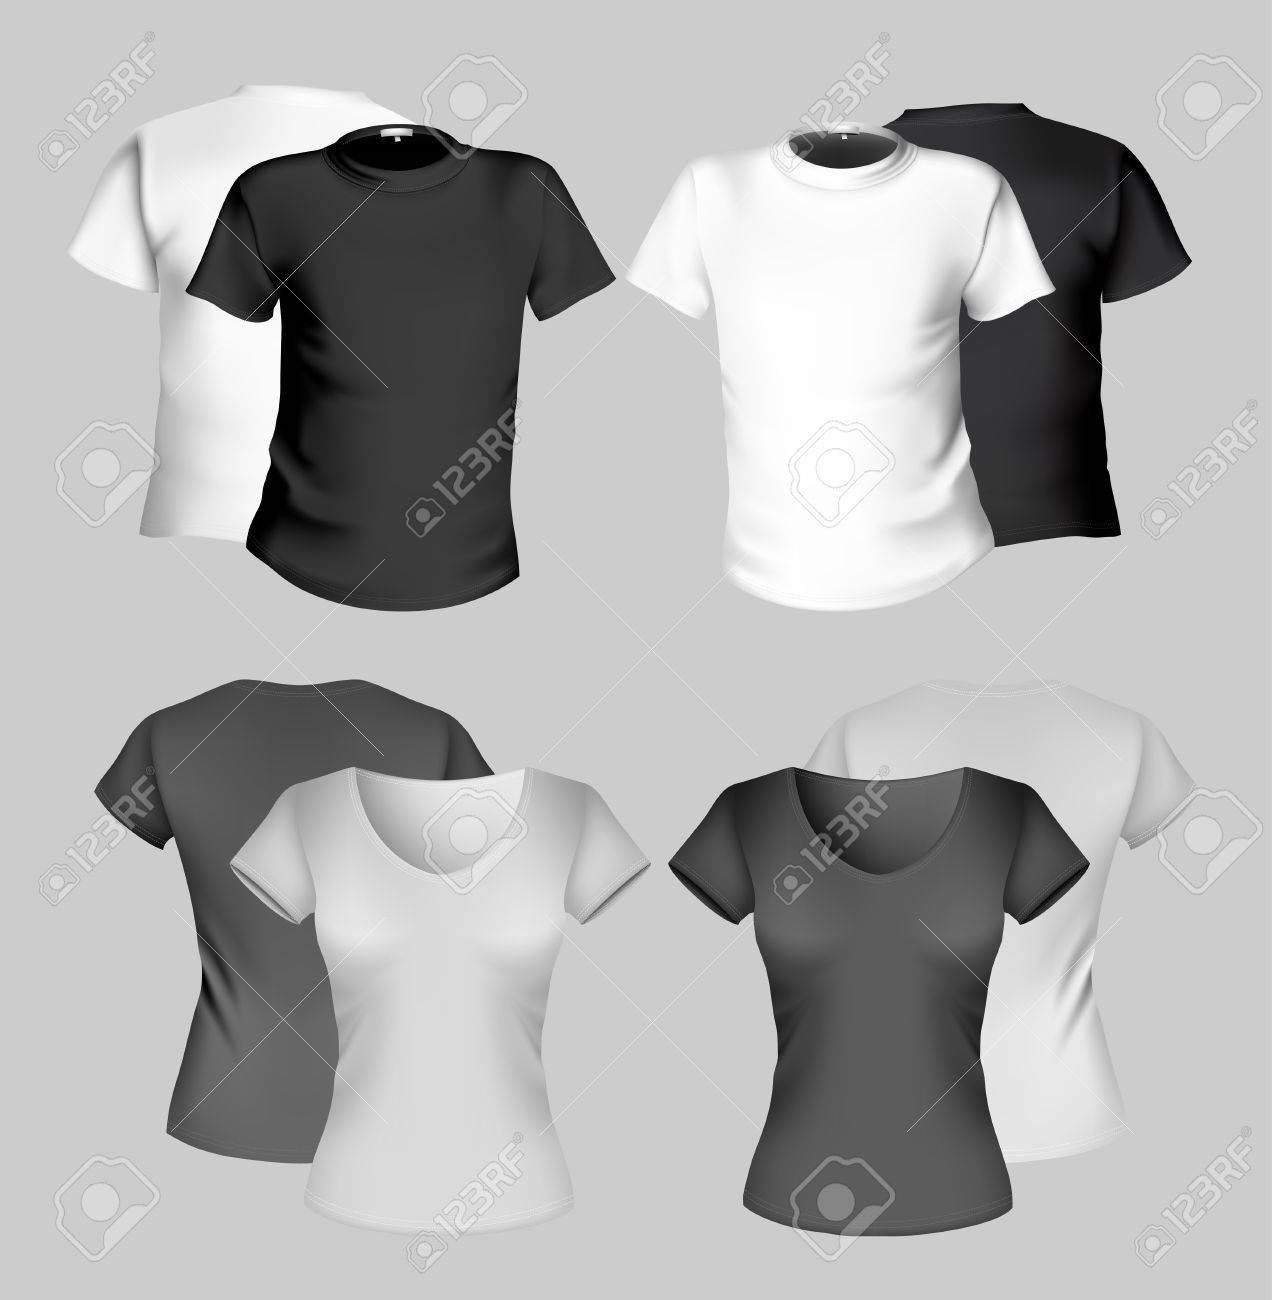 Shirt Vector Template Vector Illustration T-shirt